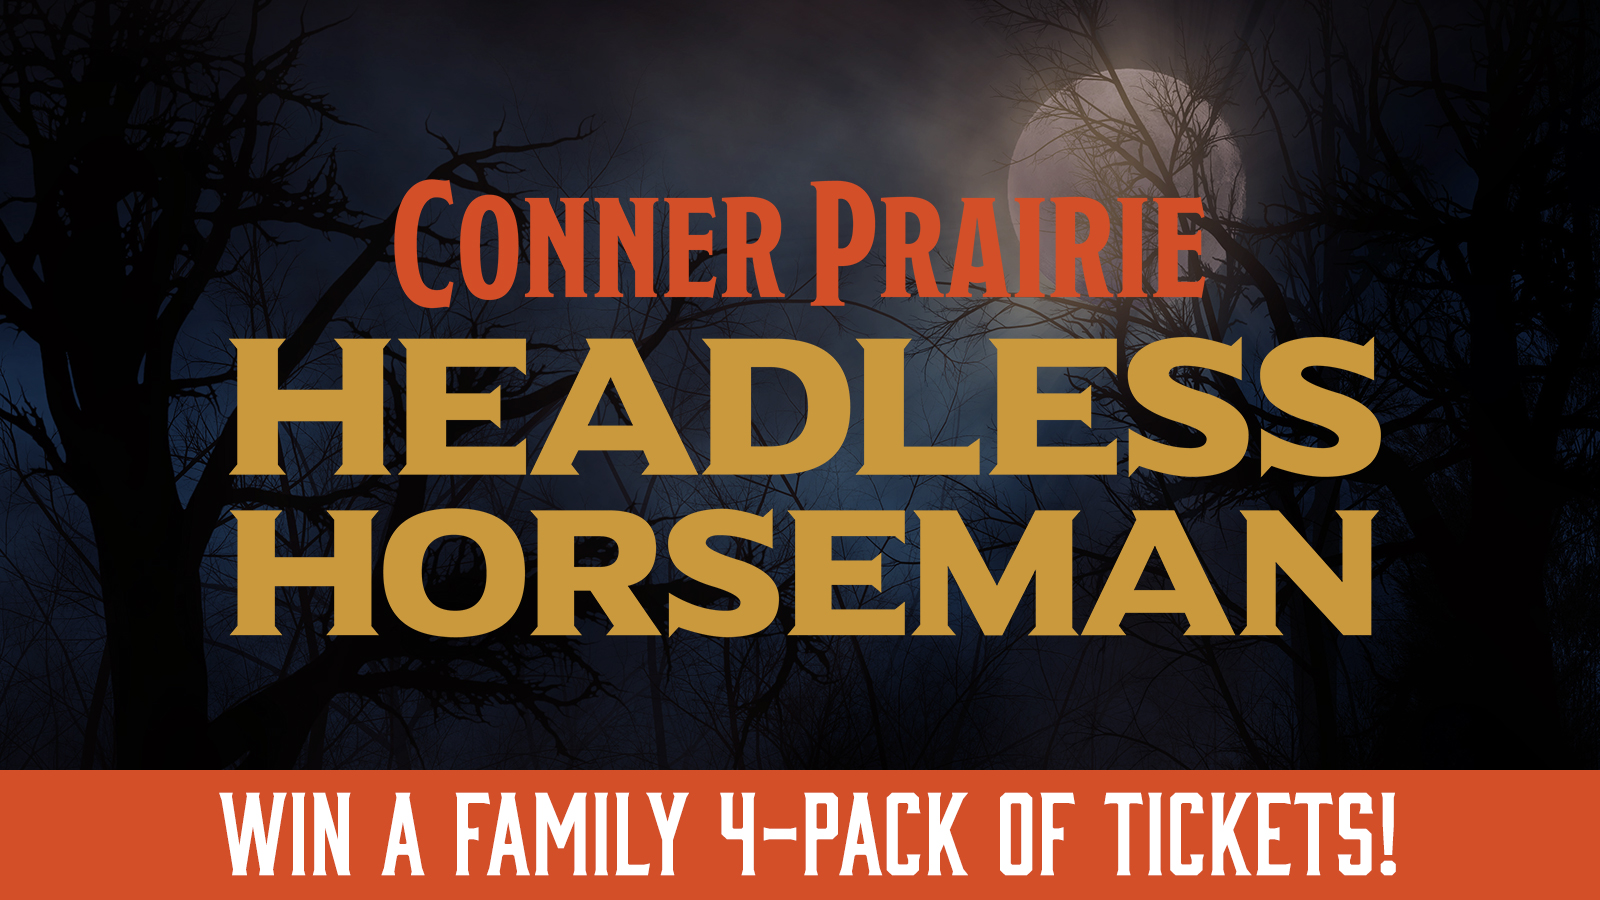 Enter Now To Win A 4-Pack Of Tickets To Conner Prairie